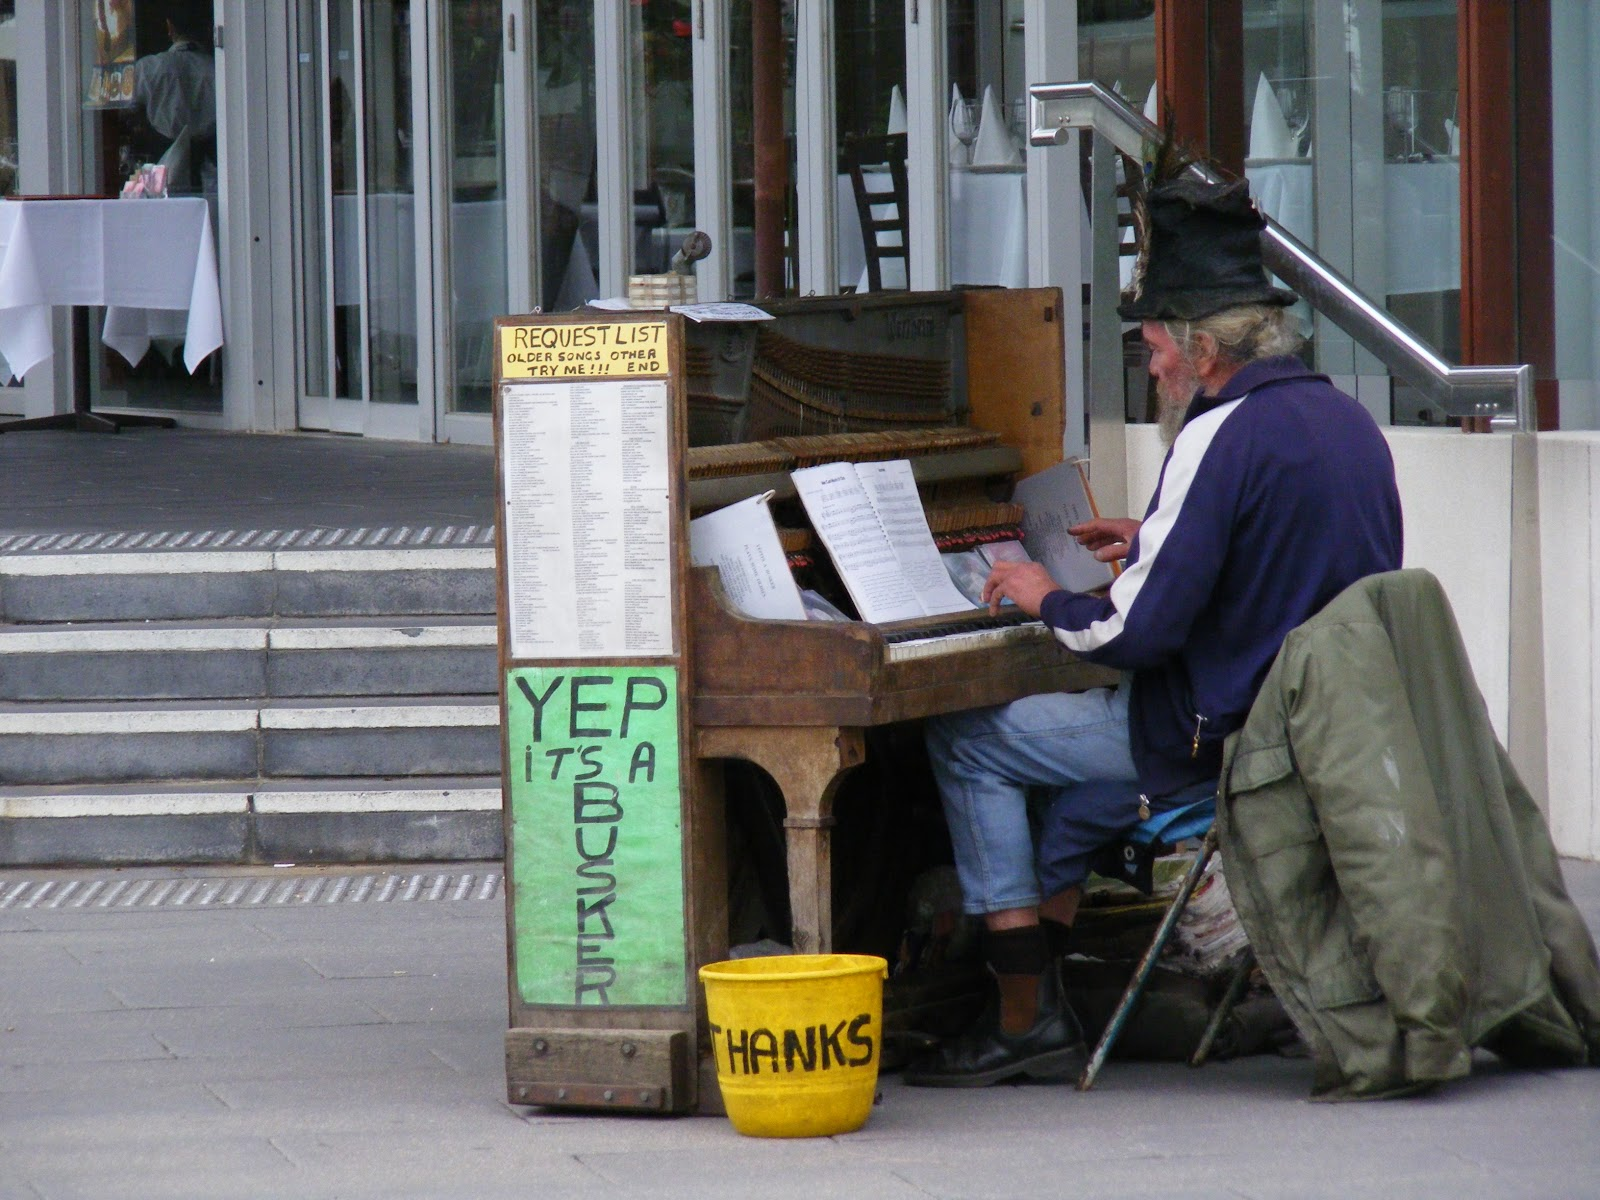 TRENTHAM TALES: Melbourne Buskers on Funky Friday